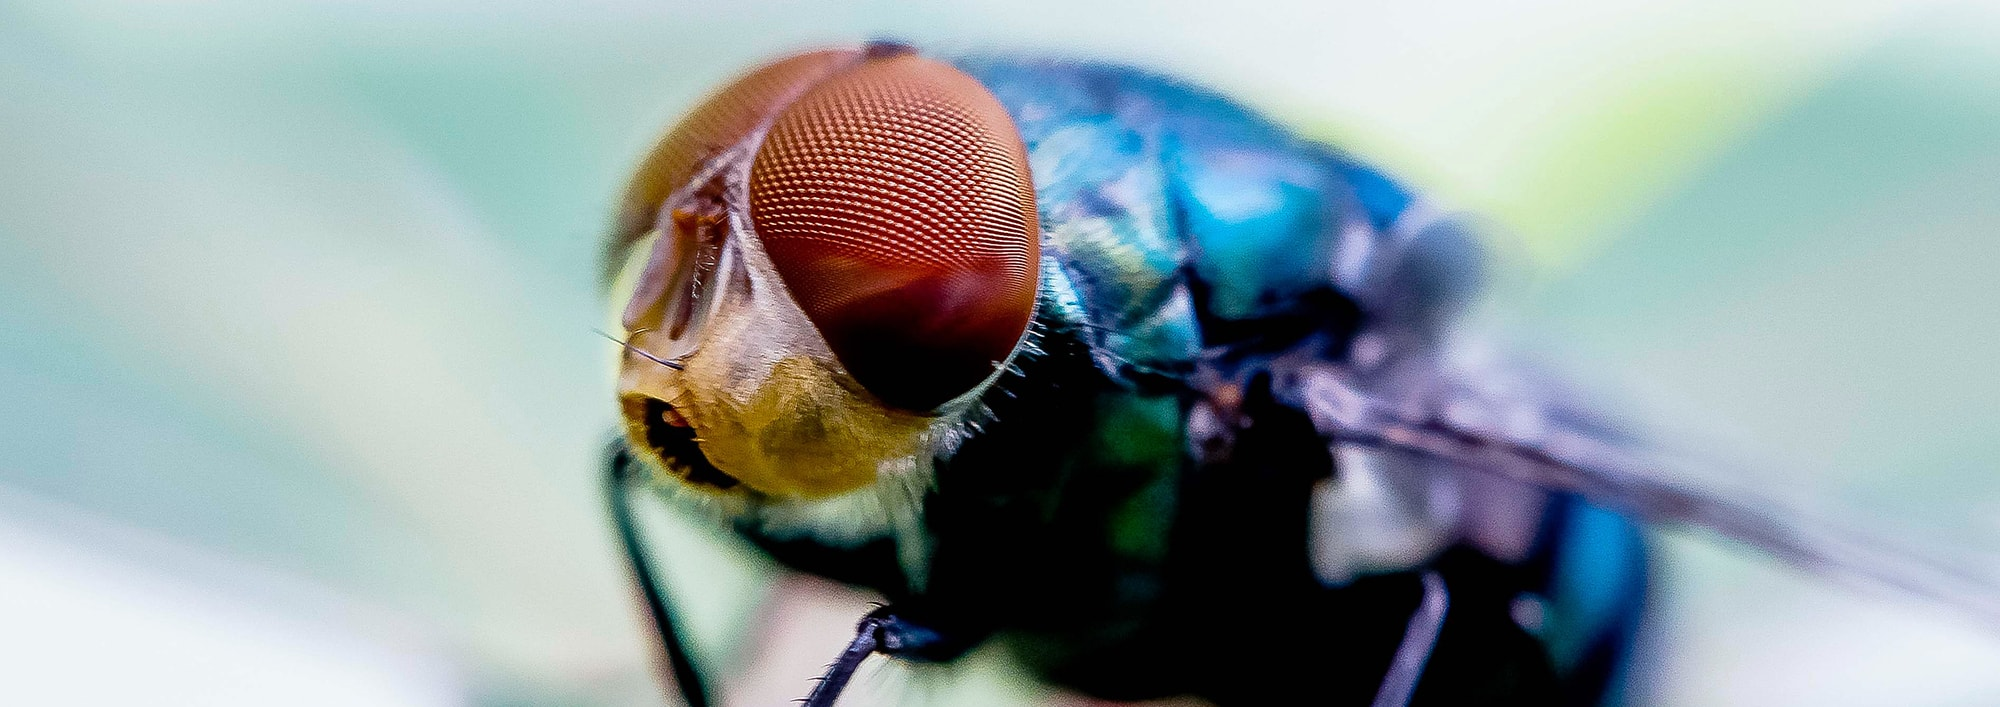 Want Super-Hearing Power? Listen Like a Fly